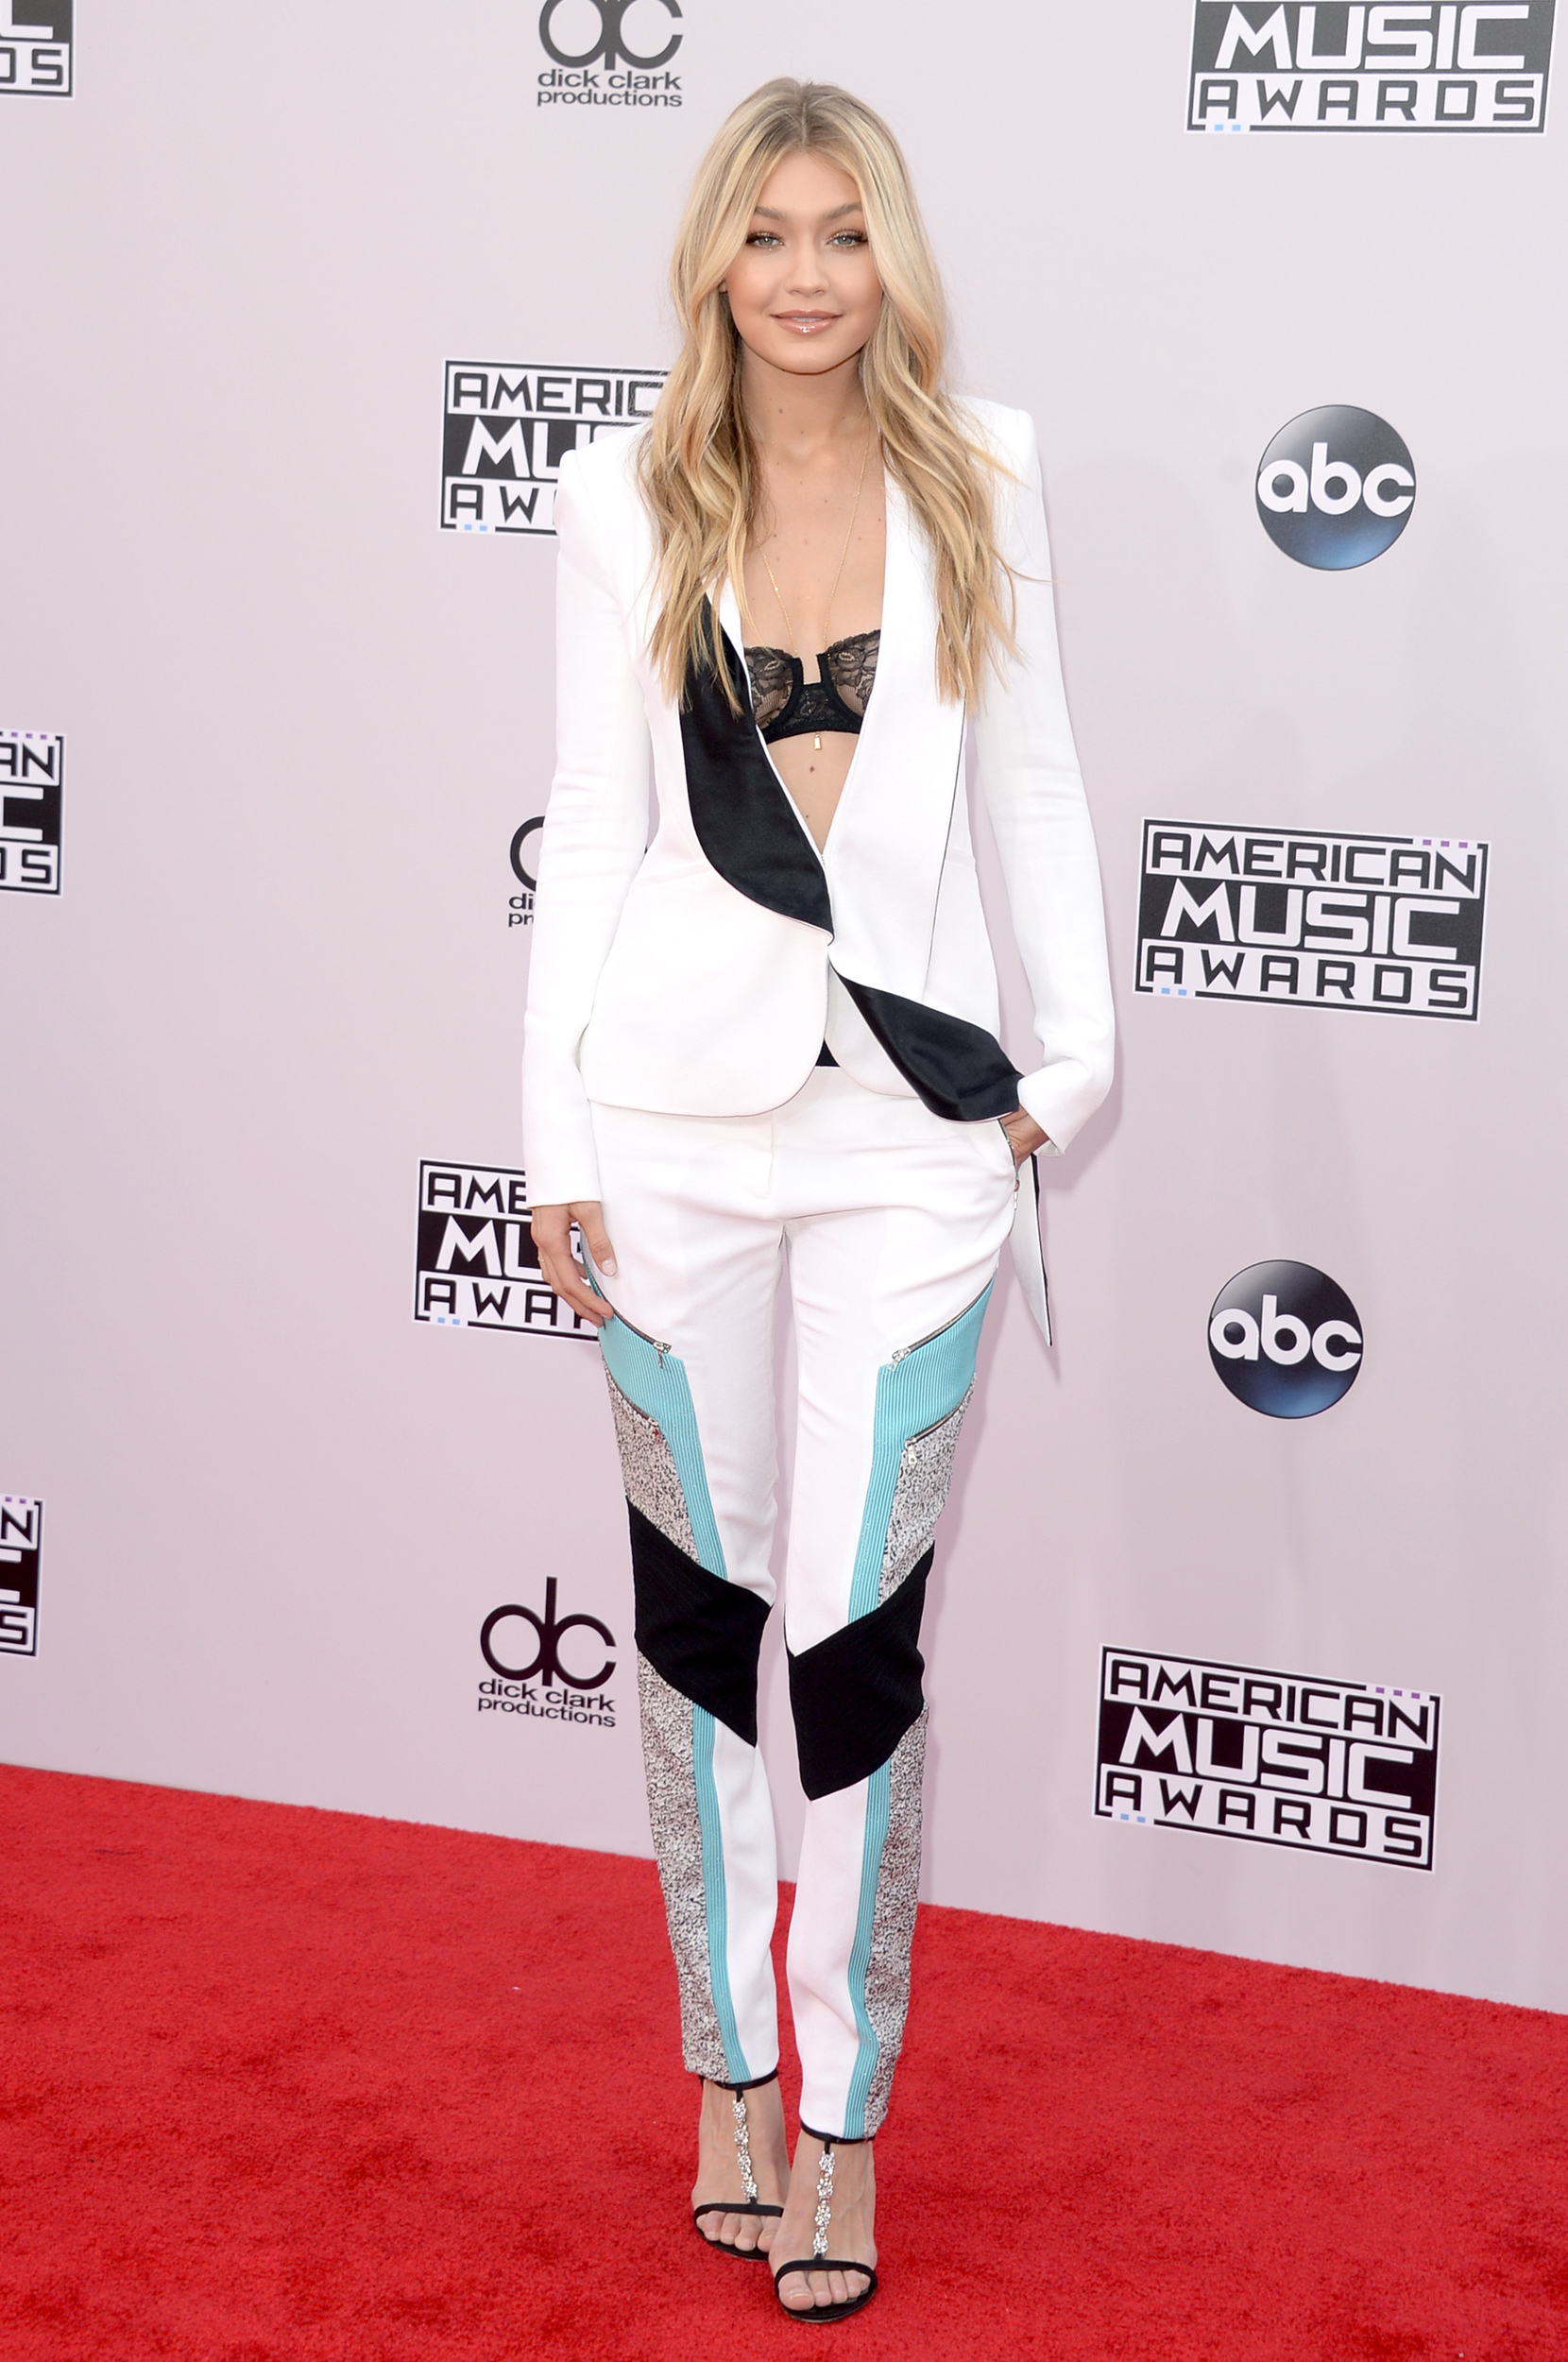 gigi hadid american music awards